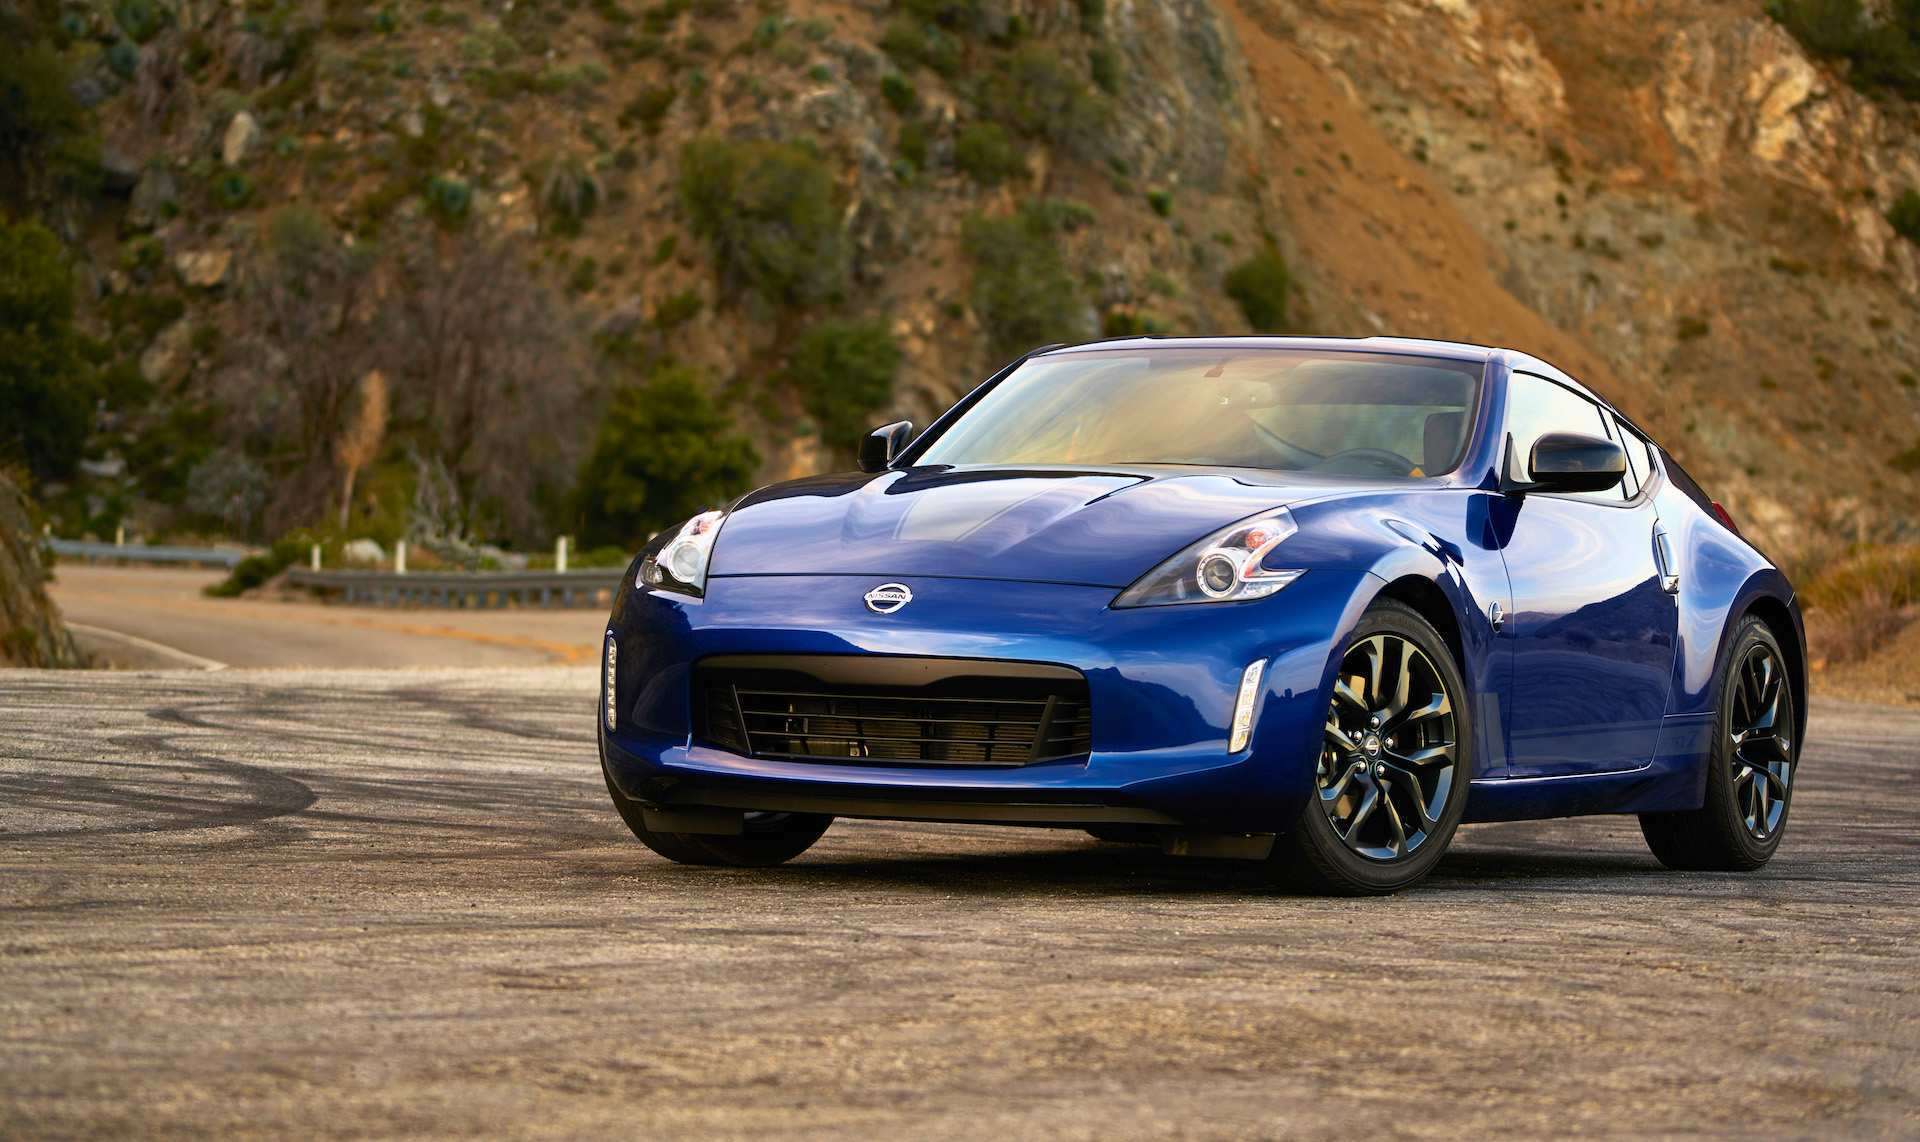 20 All New 2019 Nissan Z Car Images